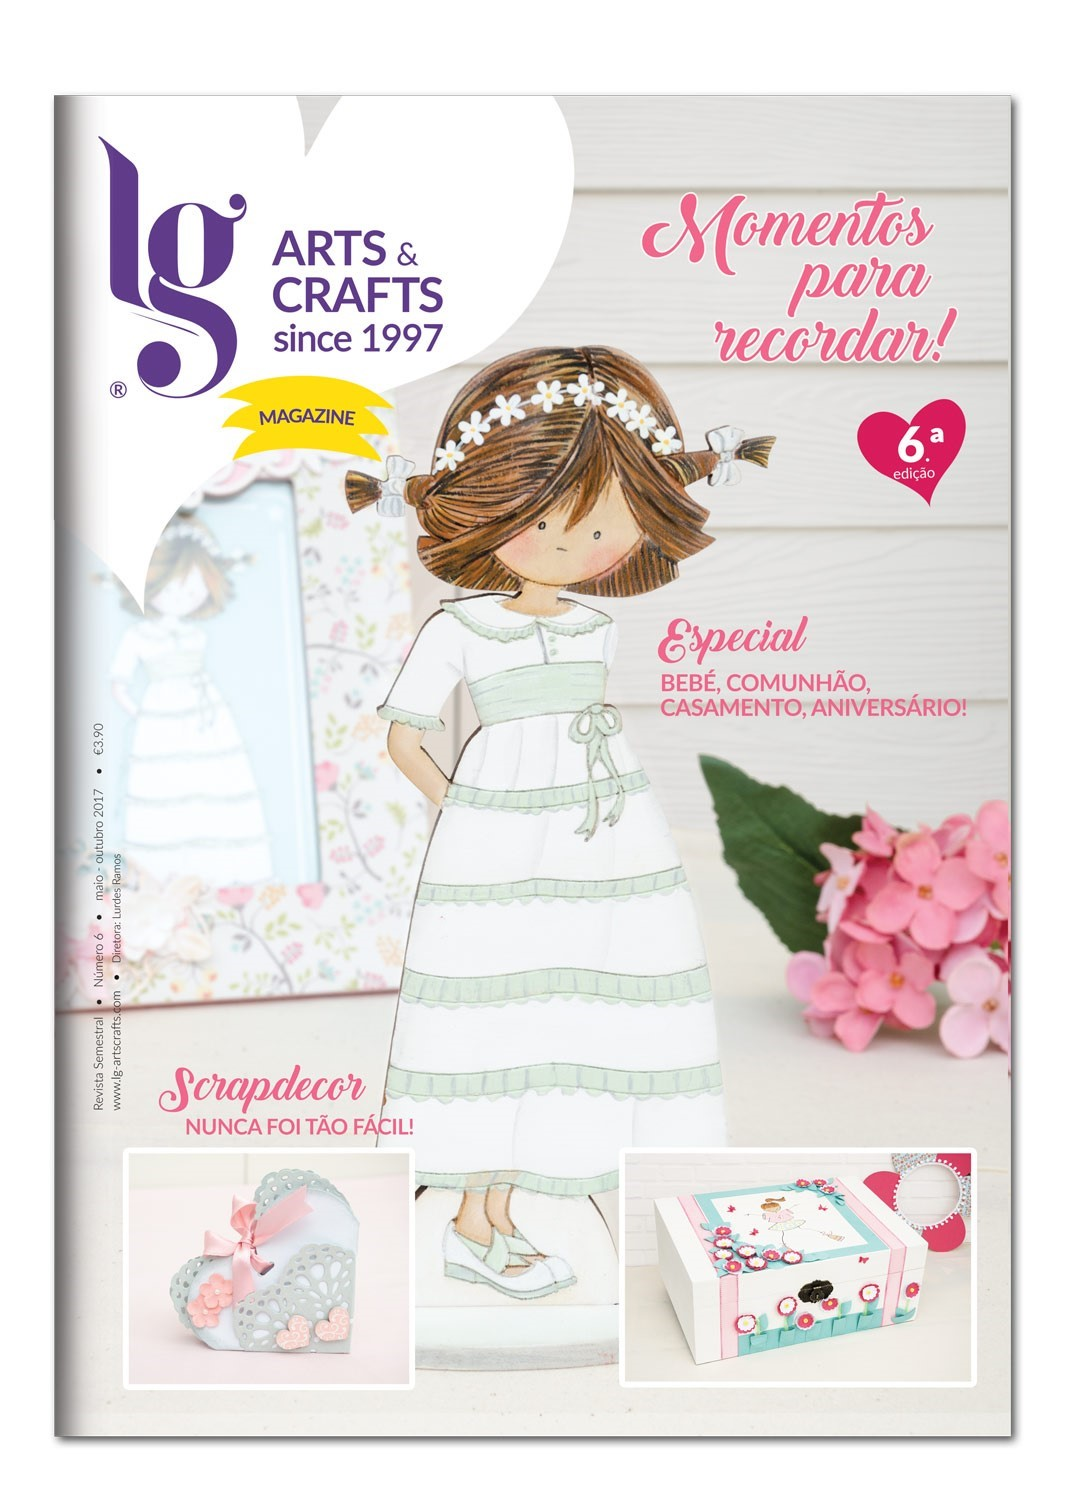 LG ARTS & CRAFTS MAGAZINE, FESTAS 2017